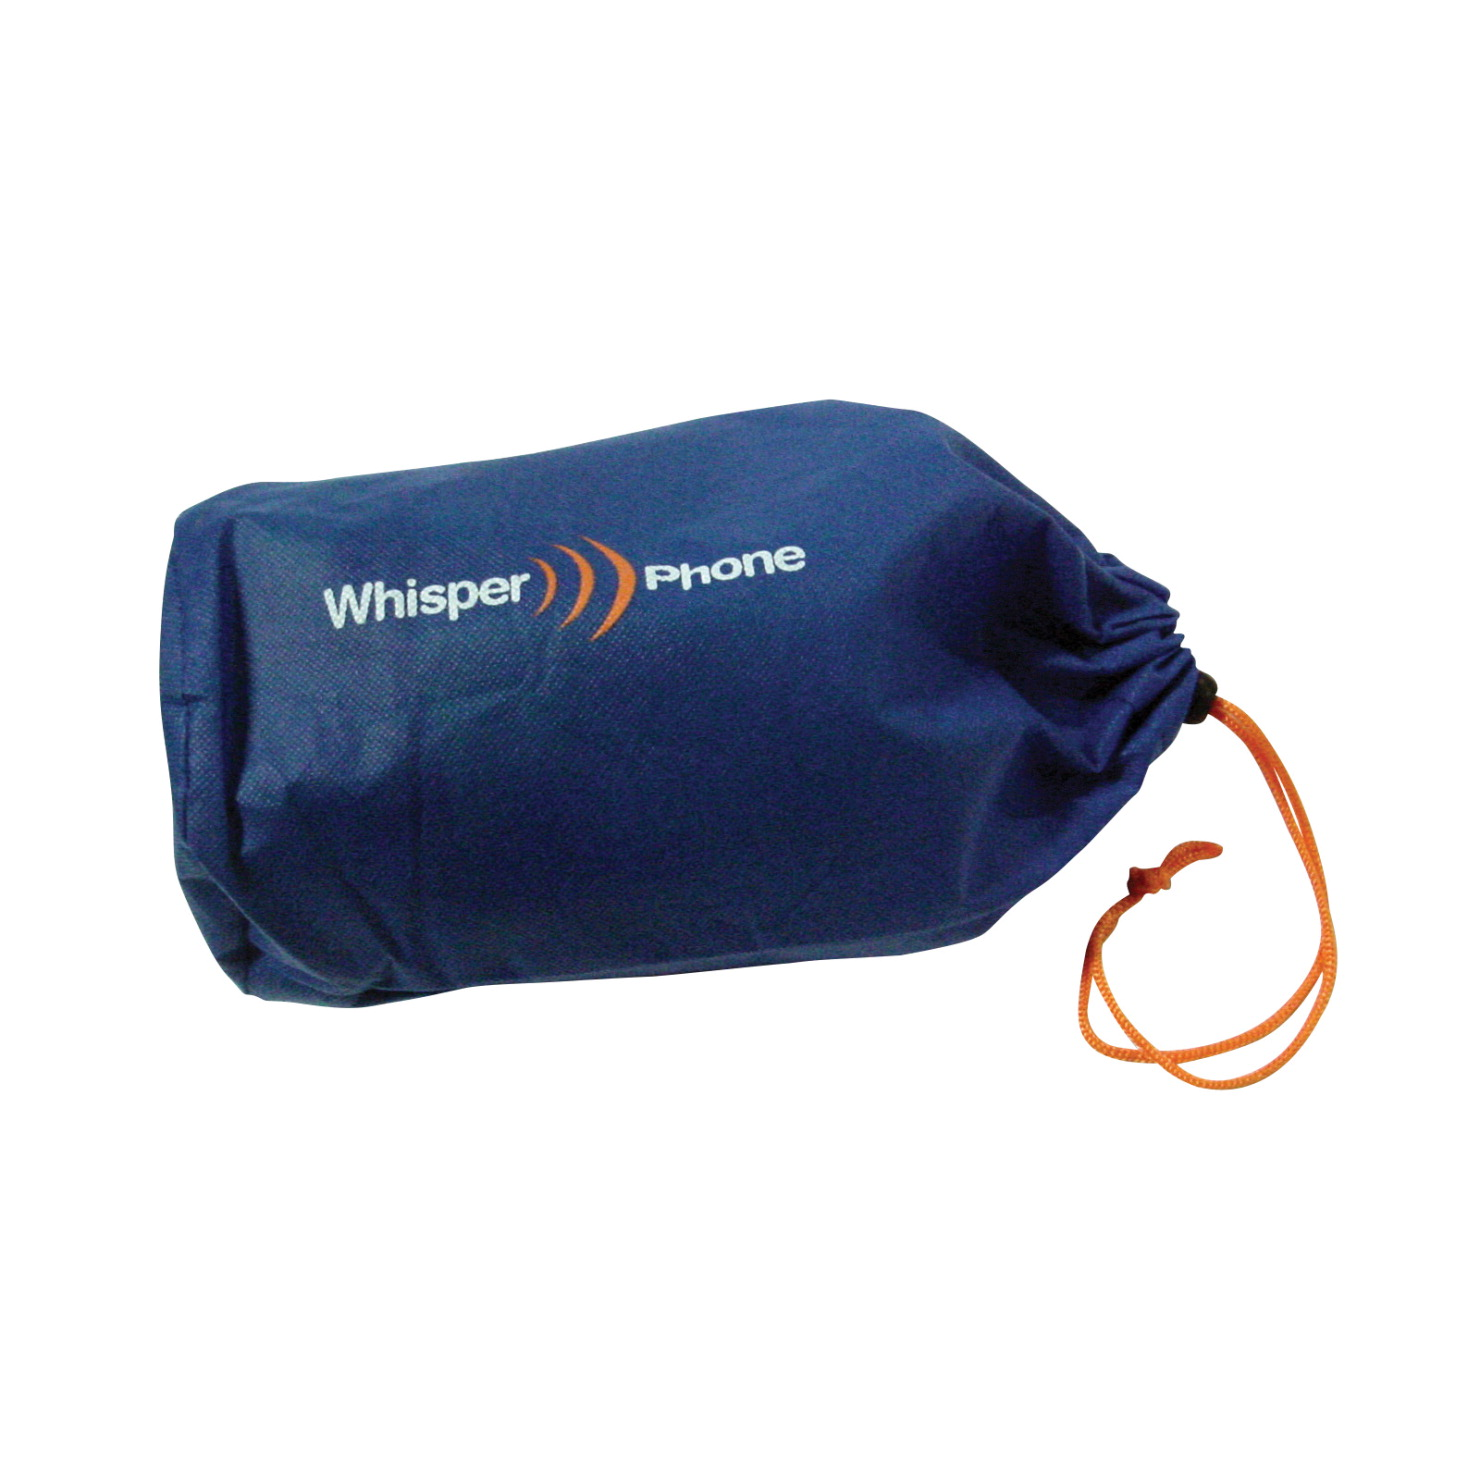 WhisperPhone Deluxe Storage Pouch for Duet, 12-1/2 X 6 in, Pack of 4